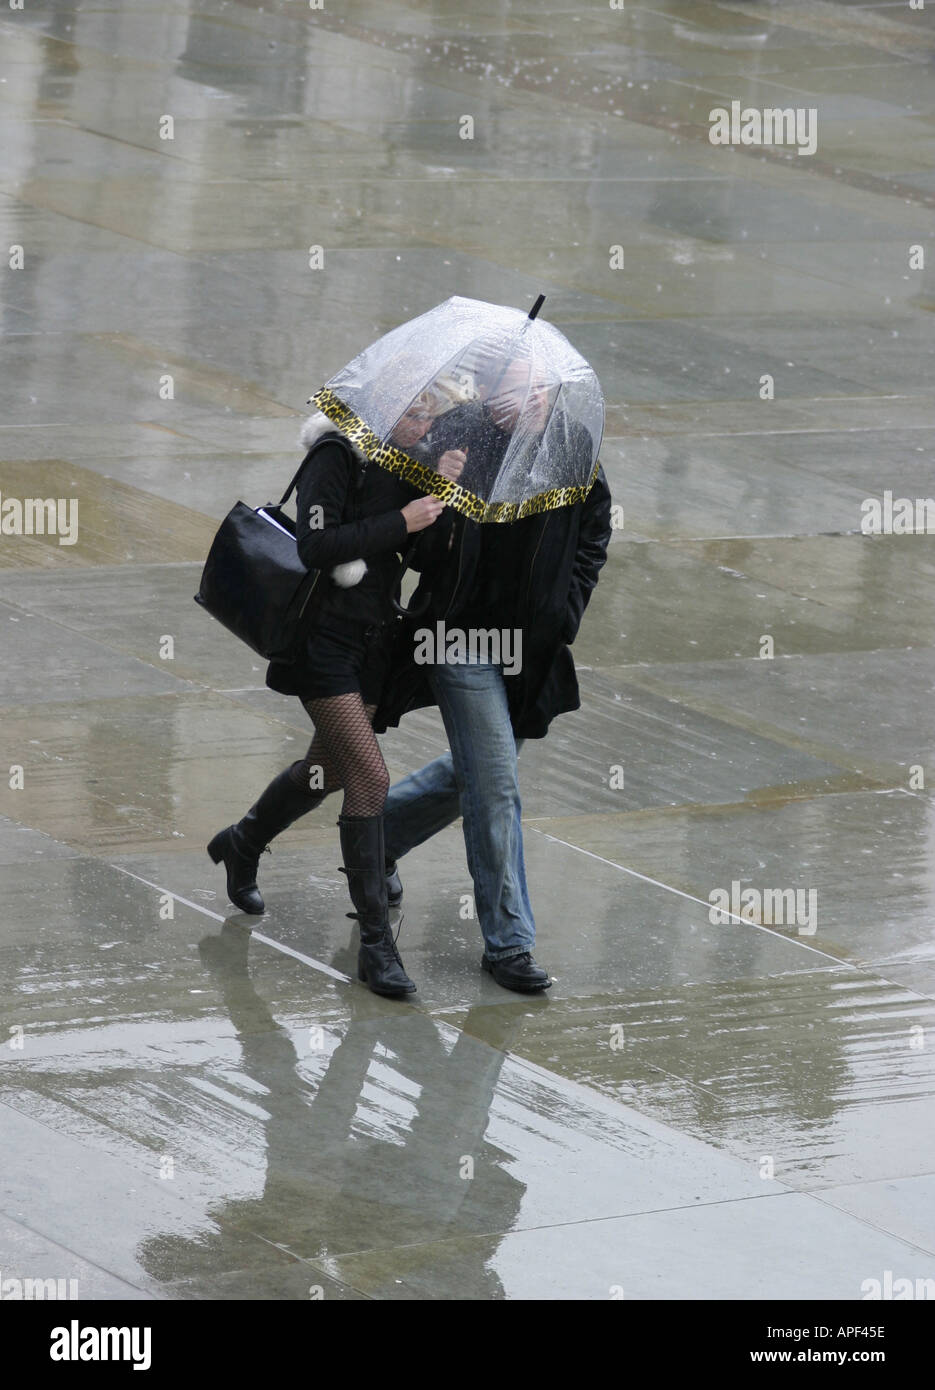 President Trump leaves Melania in the rain without an